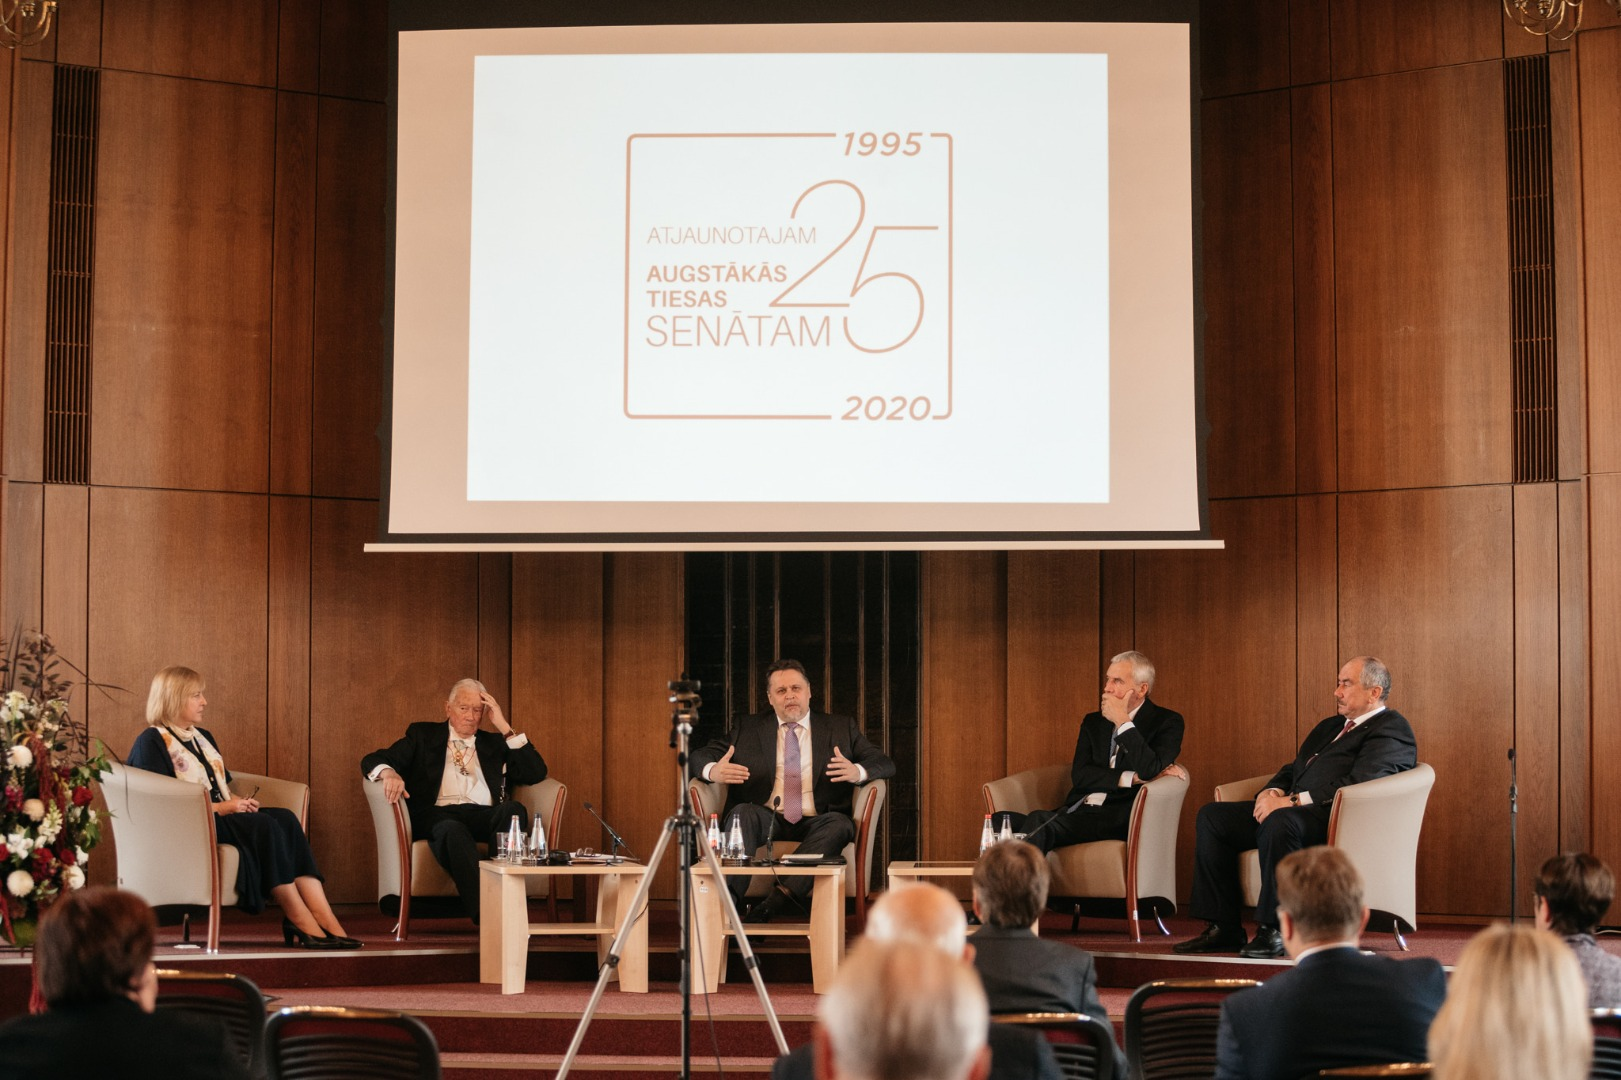 """02.10.2020. In order to mark the 25th anniversay of the Senate, the Supreme Court organized a discussion """"Senator's Personality"""". Each time period has its own challenge, and the former Chief Justices of the Supreme Court Gvido Zemribo, Andris Gulans and Ivars Bickovics spoke about them during the festive discussion. In turn, the current Chief Justice of the Supreme Court Aigars Strupiss was invited to describe the values of the 21st century senator's personality"""